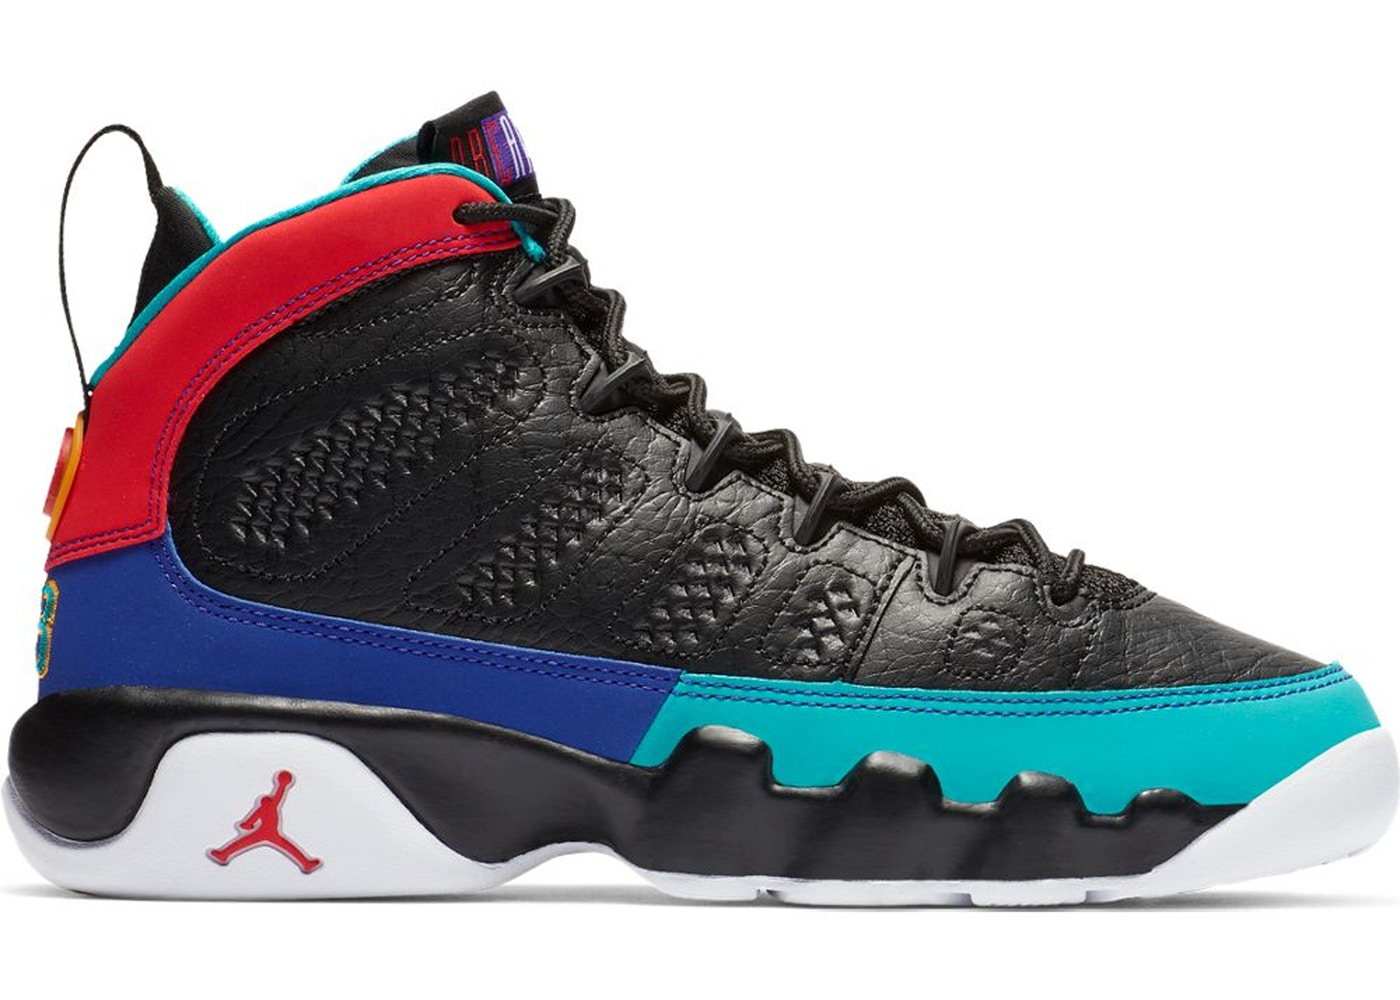 newest 2dfe5 87908 Jordan 9 Retro Dream It Do It (GS) - 302359-065